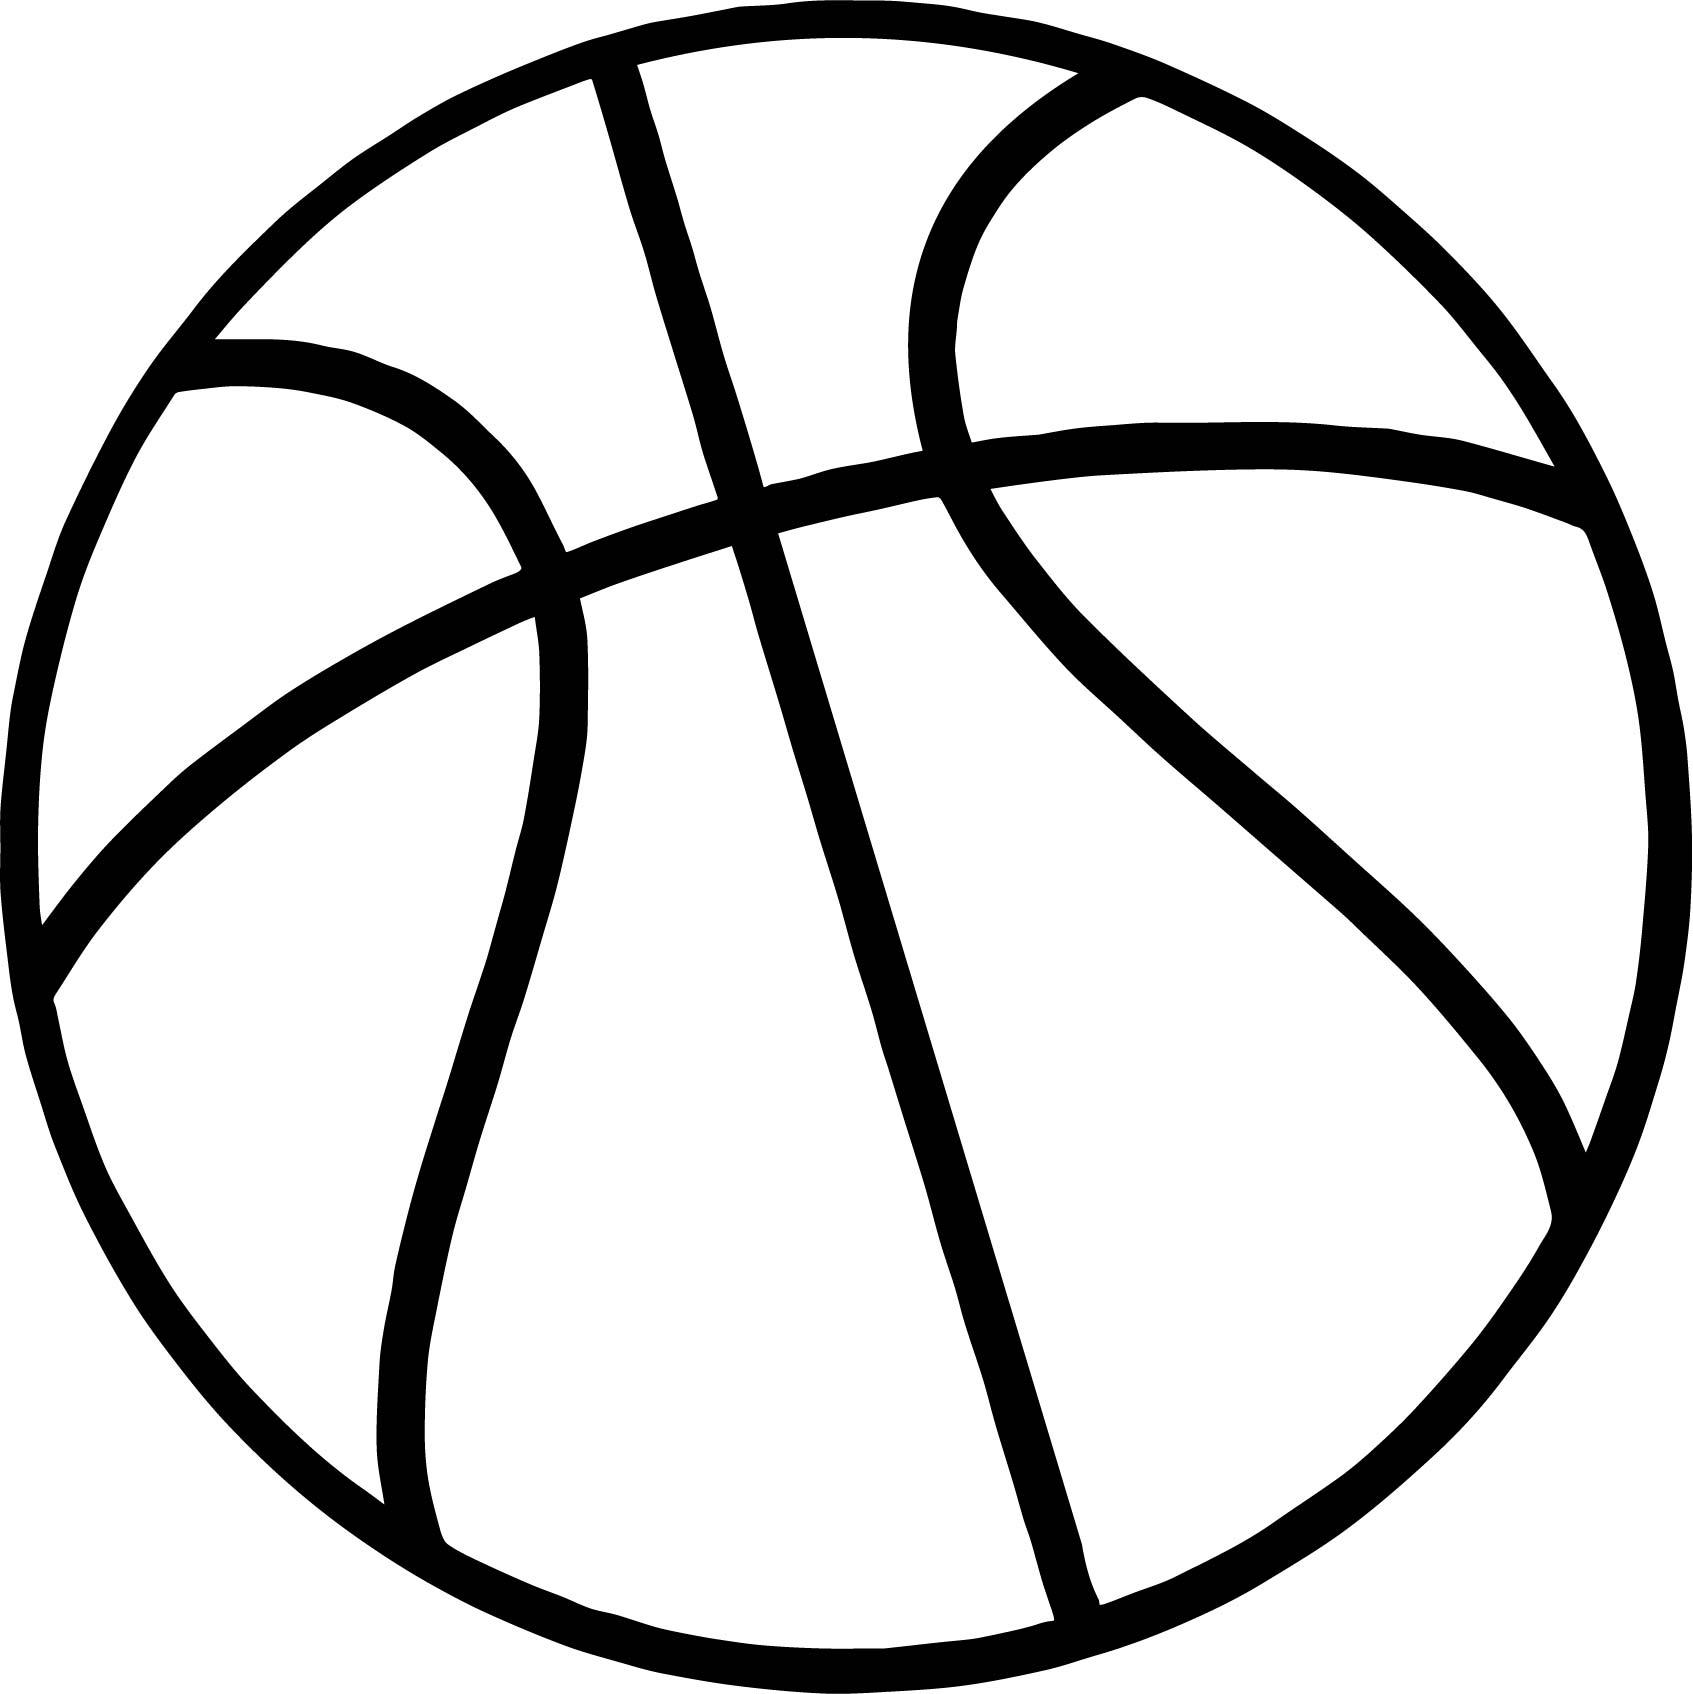 colouring pages of ball free printable sports balls coloring pages of colouring pages ball